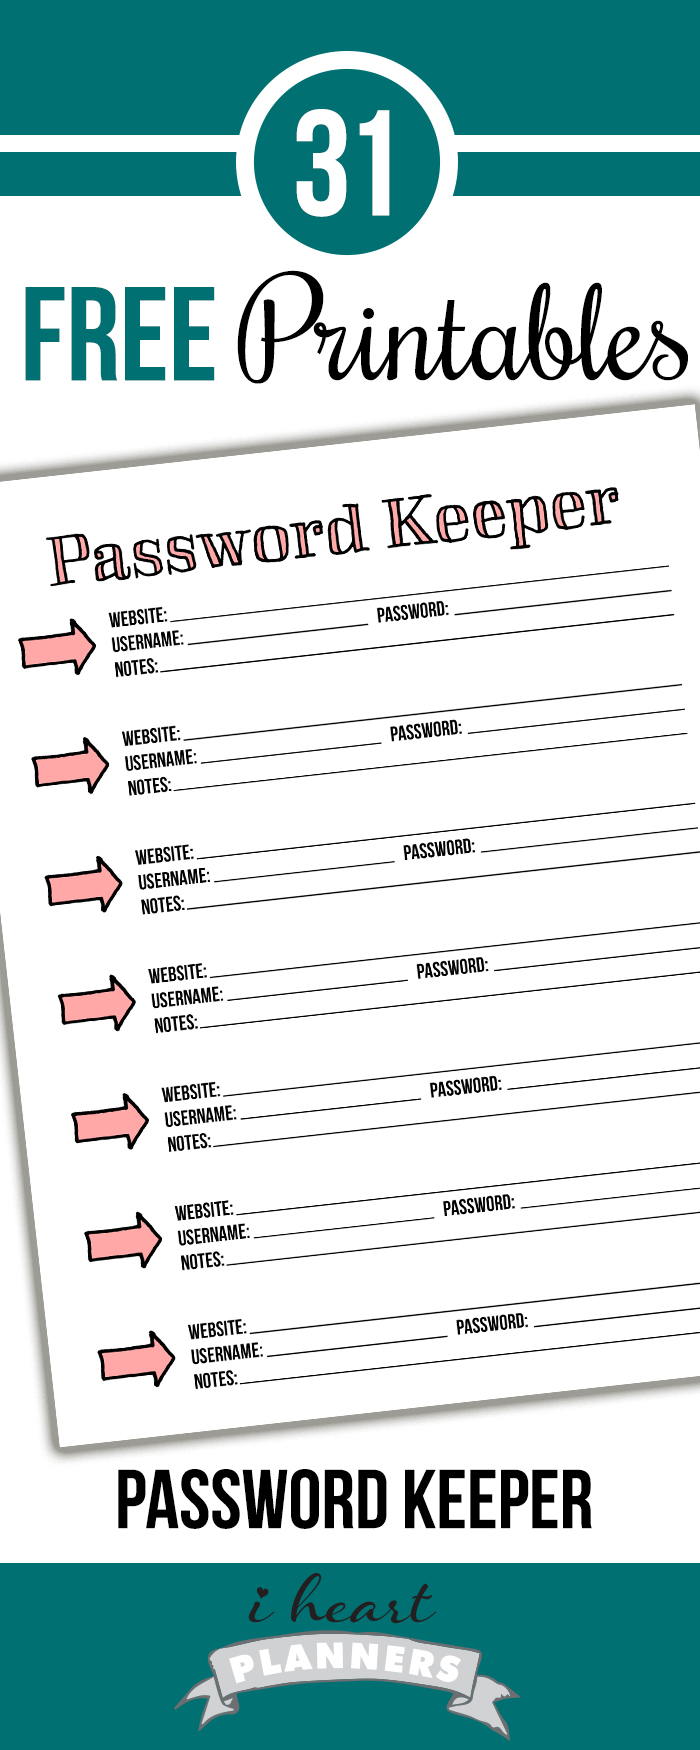 picture relating to Password Printables called Working day 6: Pword Keeper - I Centre Planners